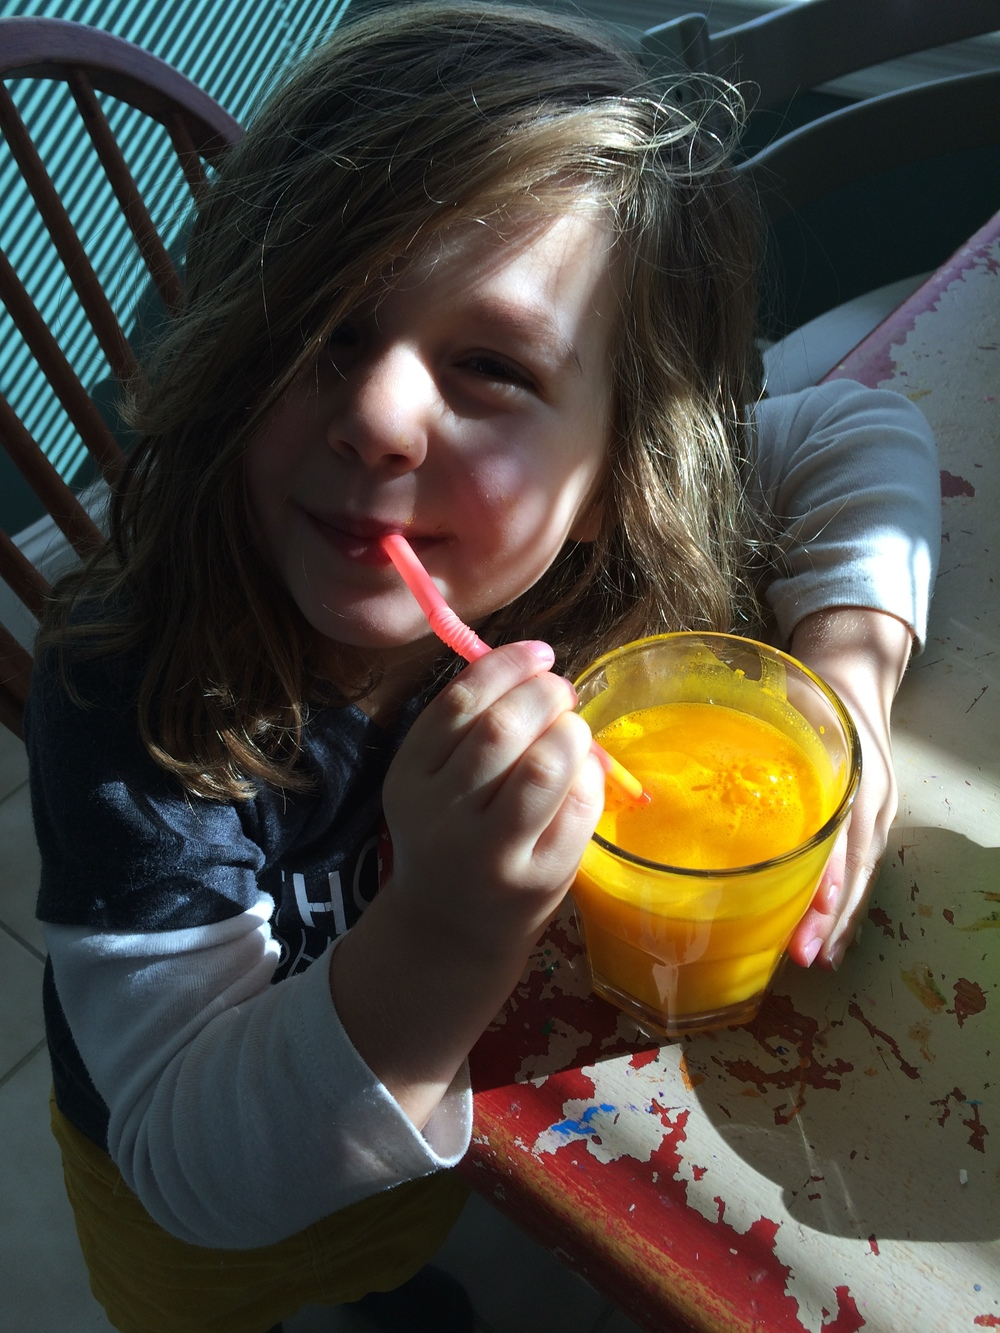 Judah and her fancy curcumin drink.